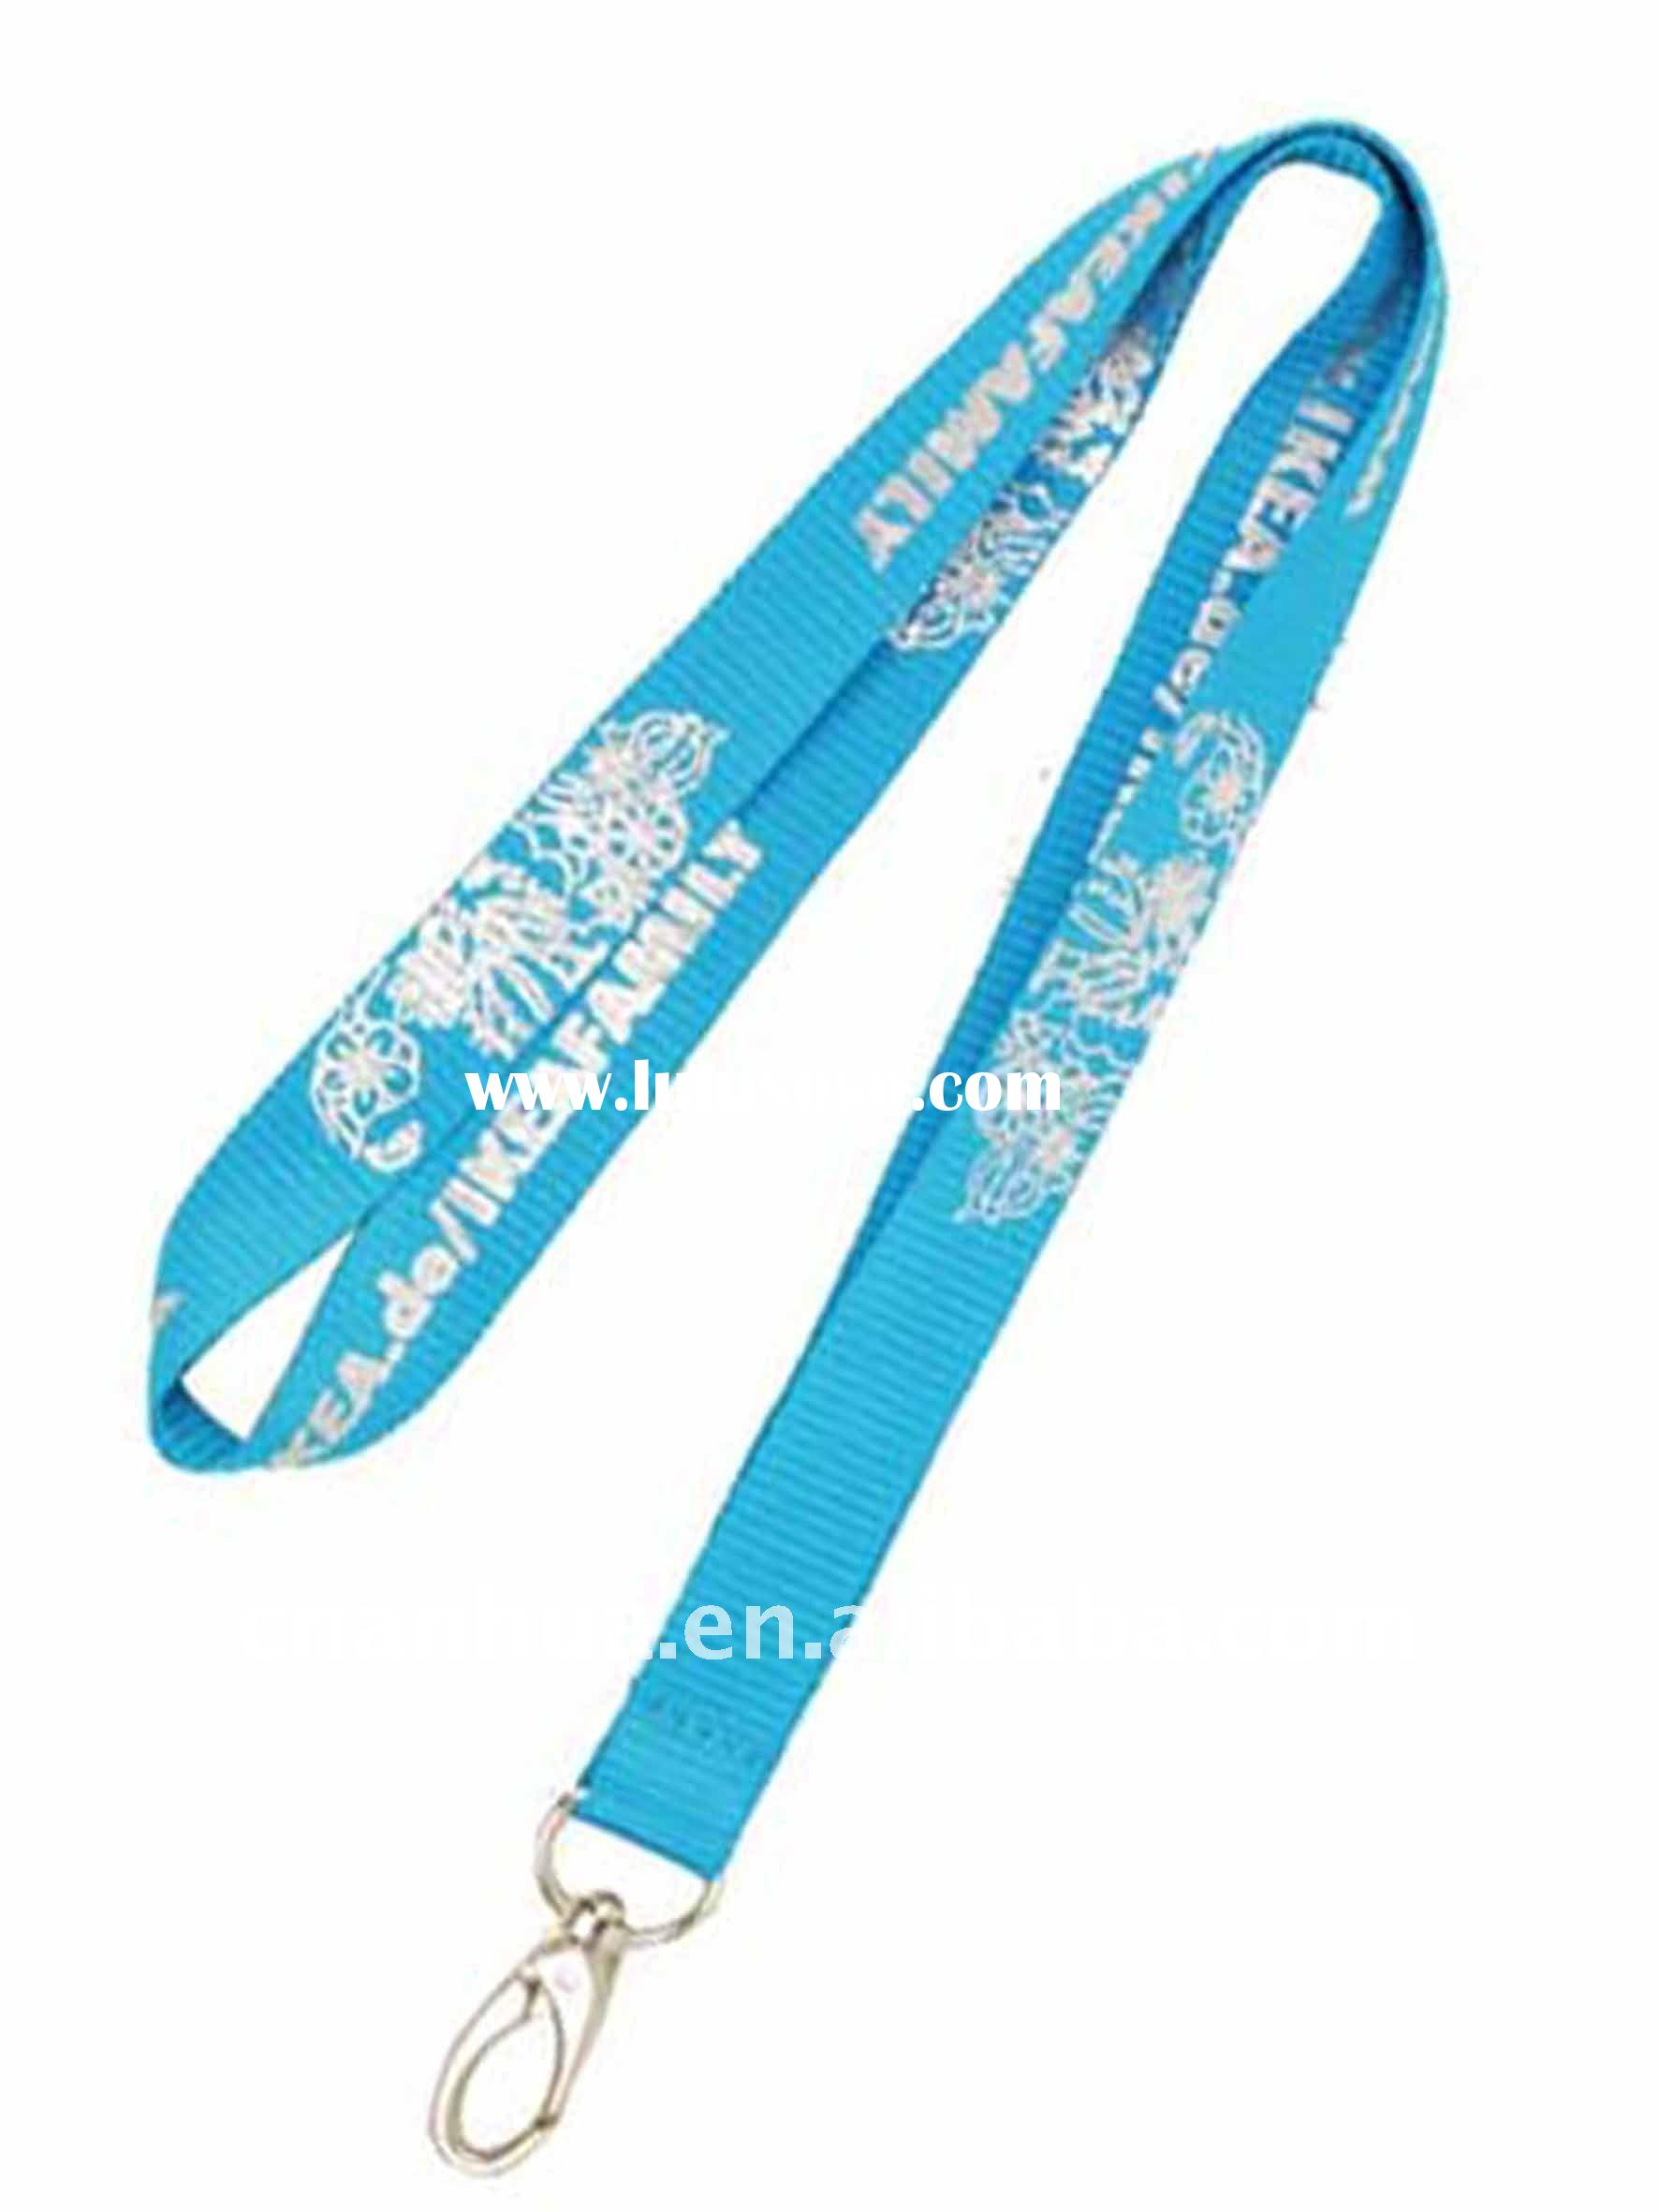 badge holder polyester lanyard